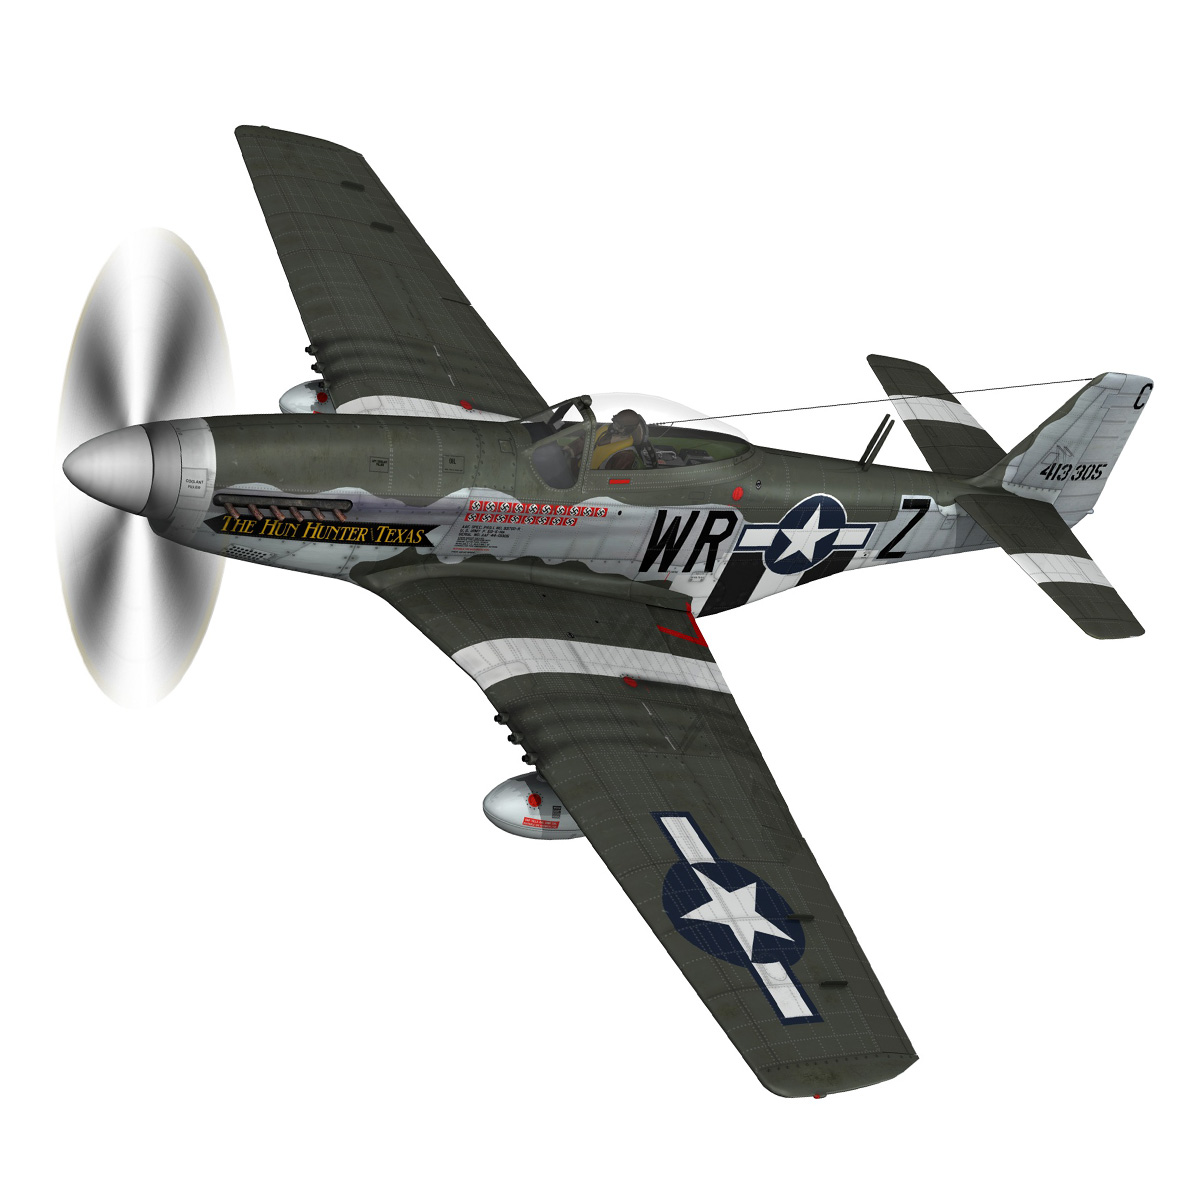 north american p-51d – the hun hunter / texas 3d model fbx c4d lwo obj 282528